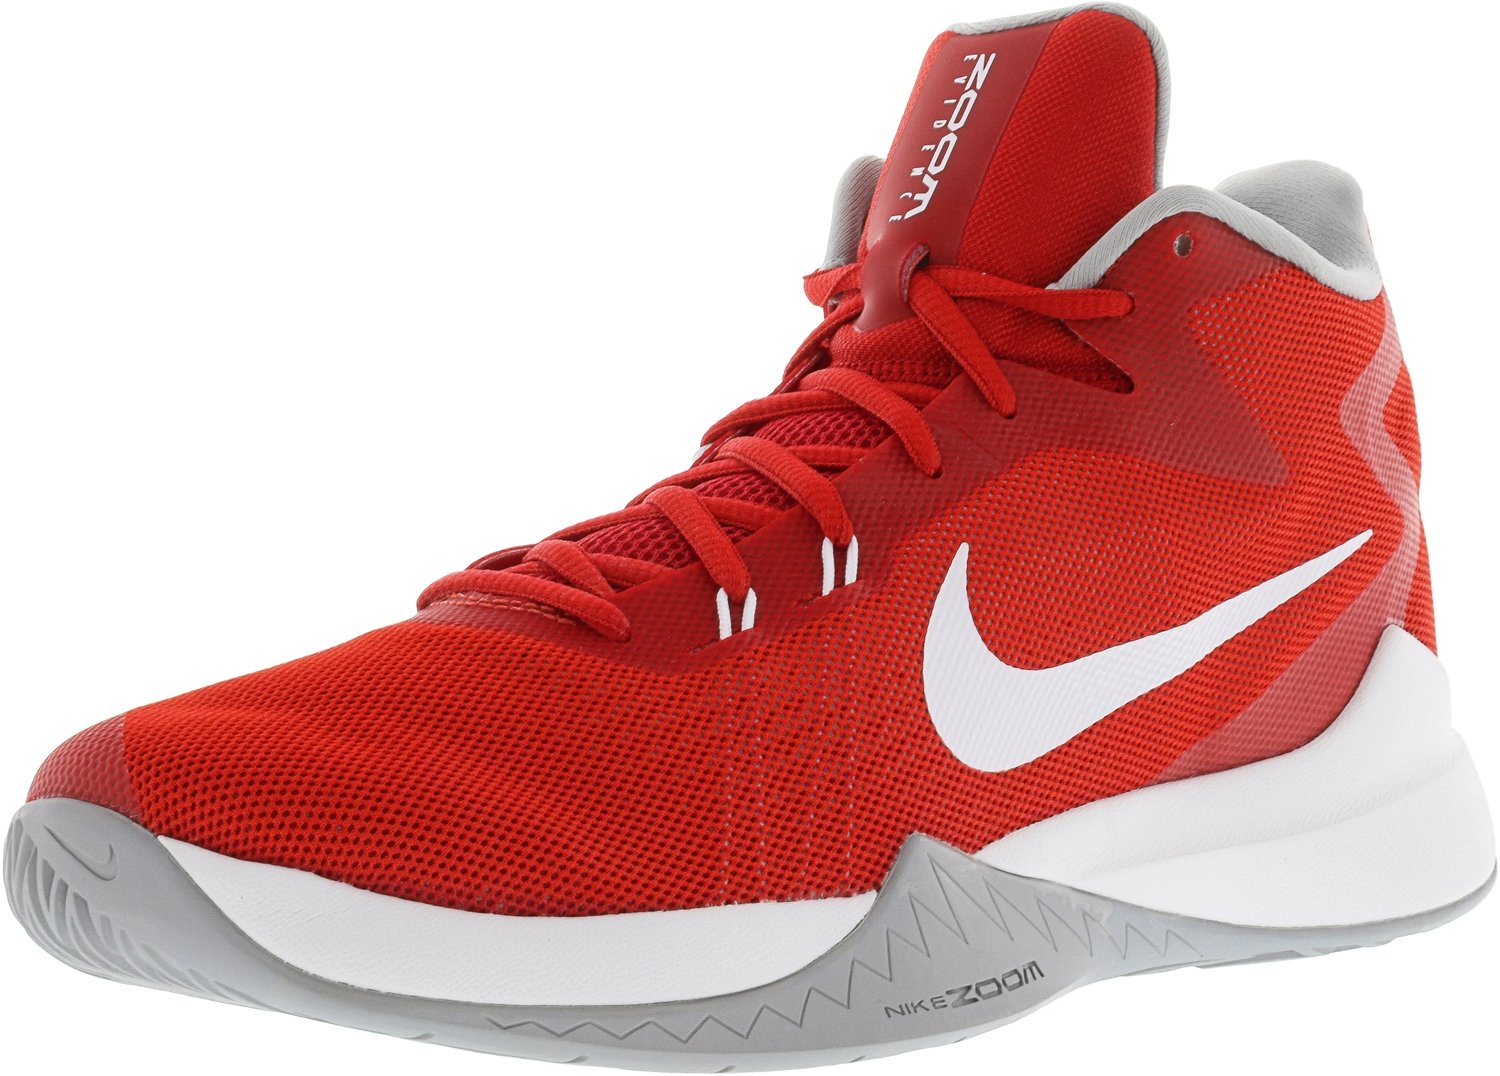 NIKE Men's Zoom Evidence Basketball Shoes B01MZ2804R 7.5 D(M) US|University Red/White/Wolf Grey